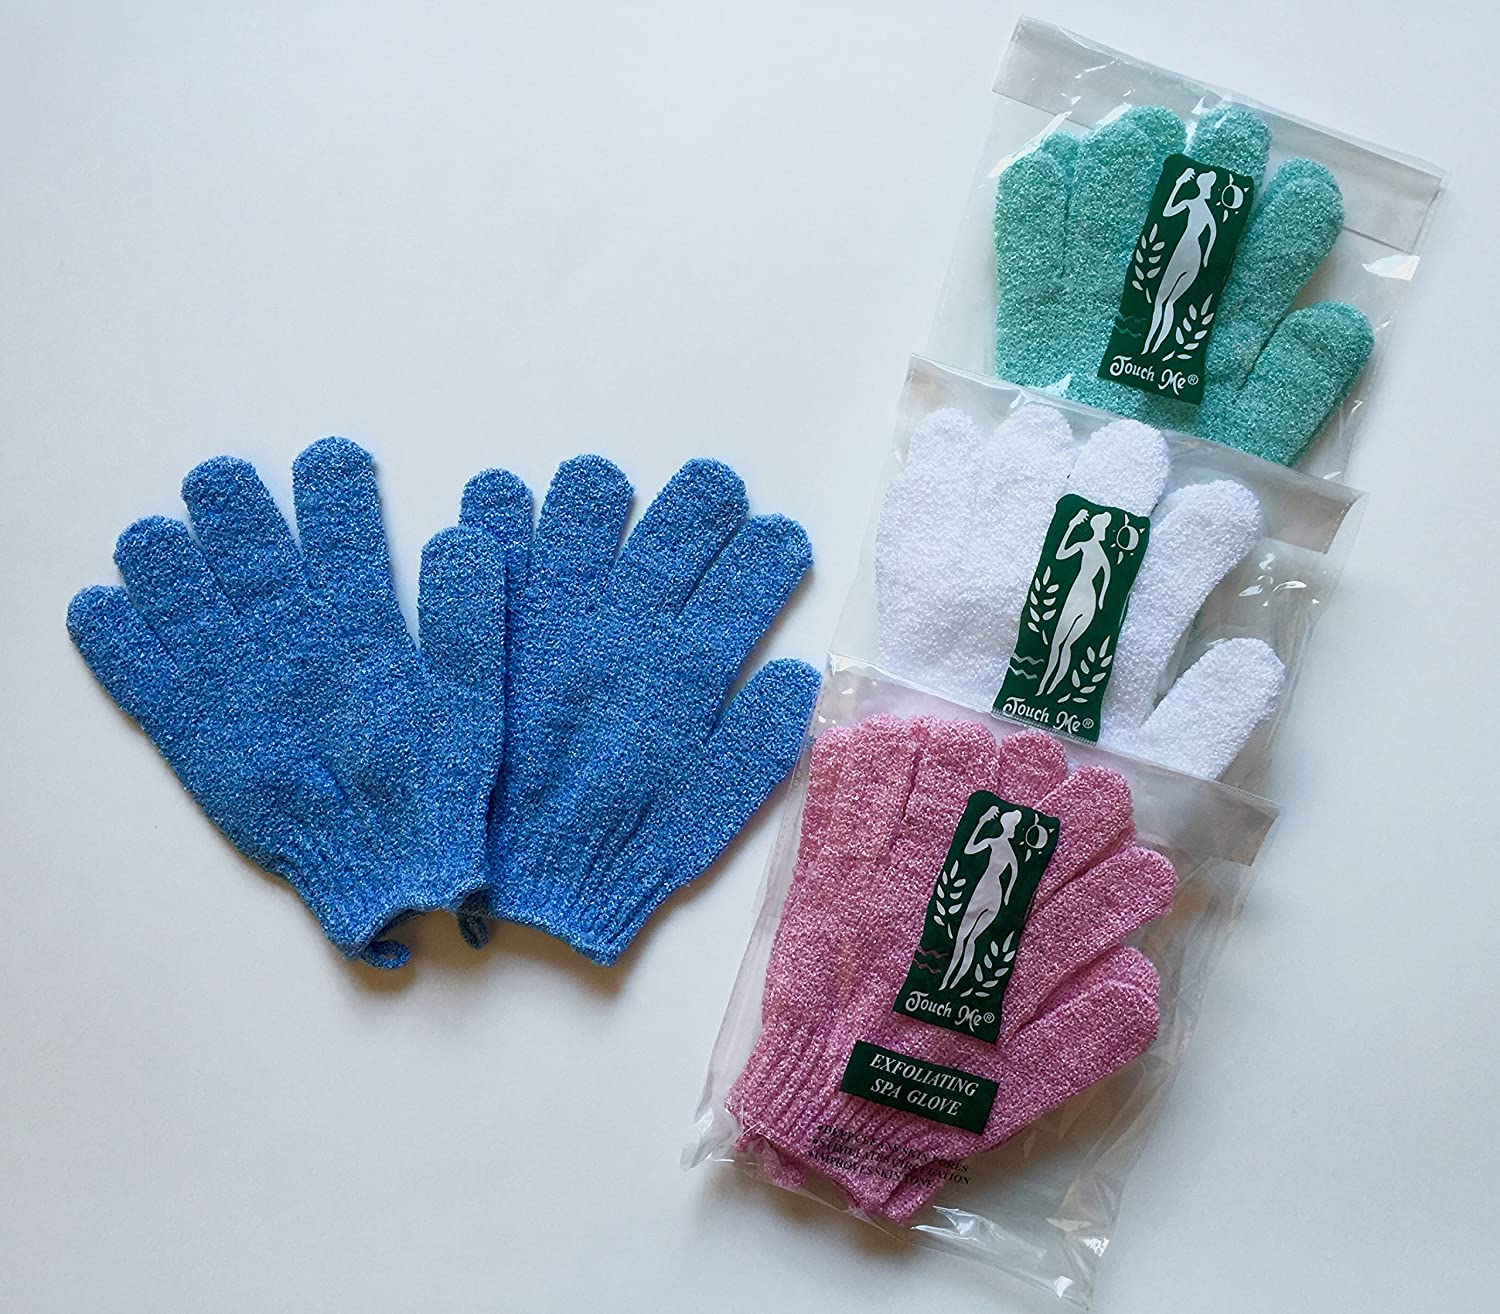 Amazon.com : 4 pairs/set Touch Me Exfoliating Spa Bath Gloves ...